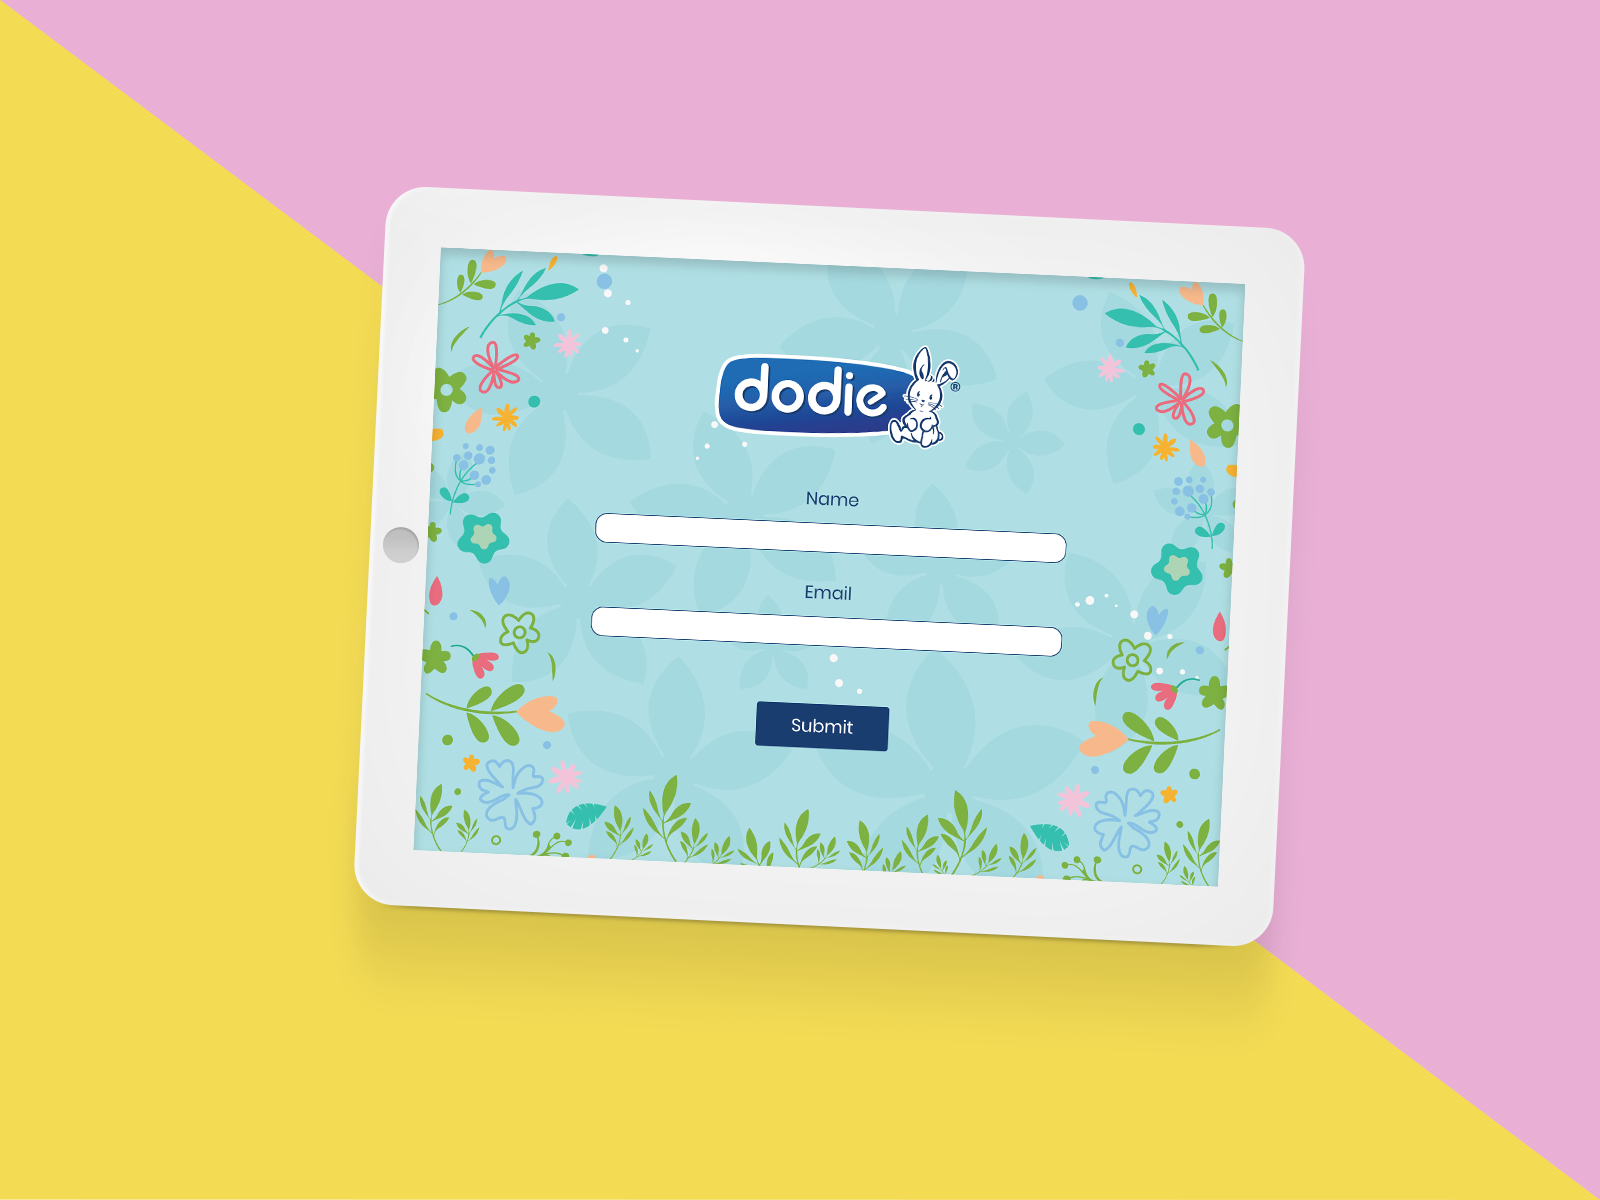 Dodie Event Tablet